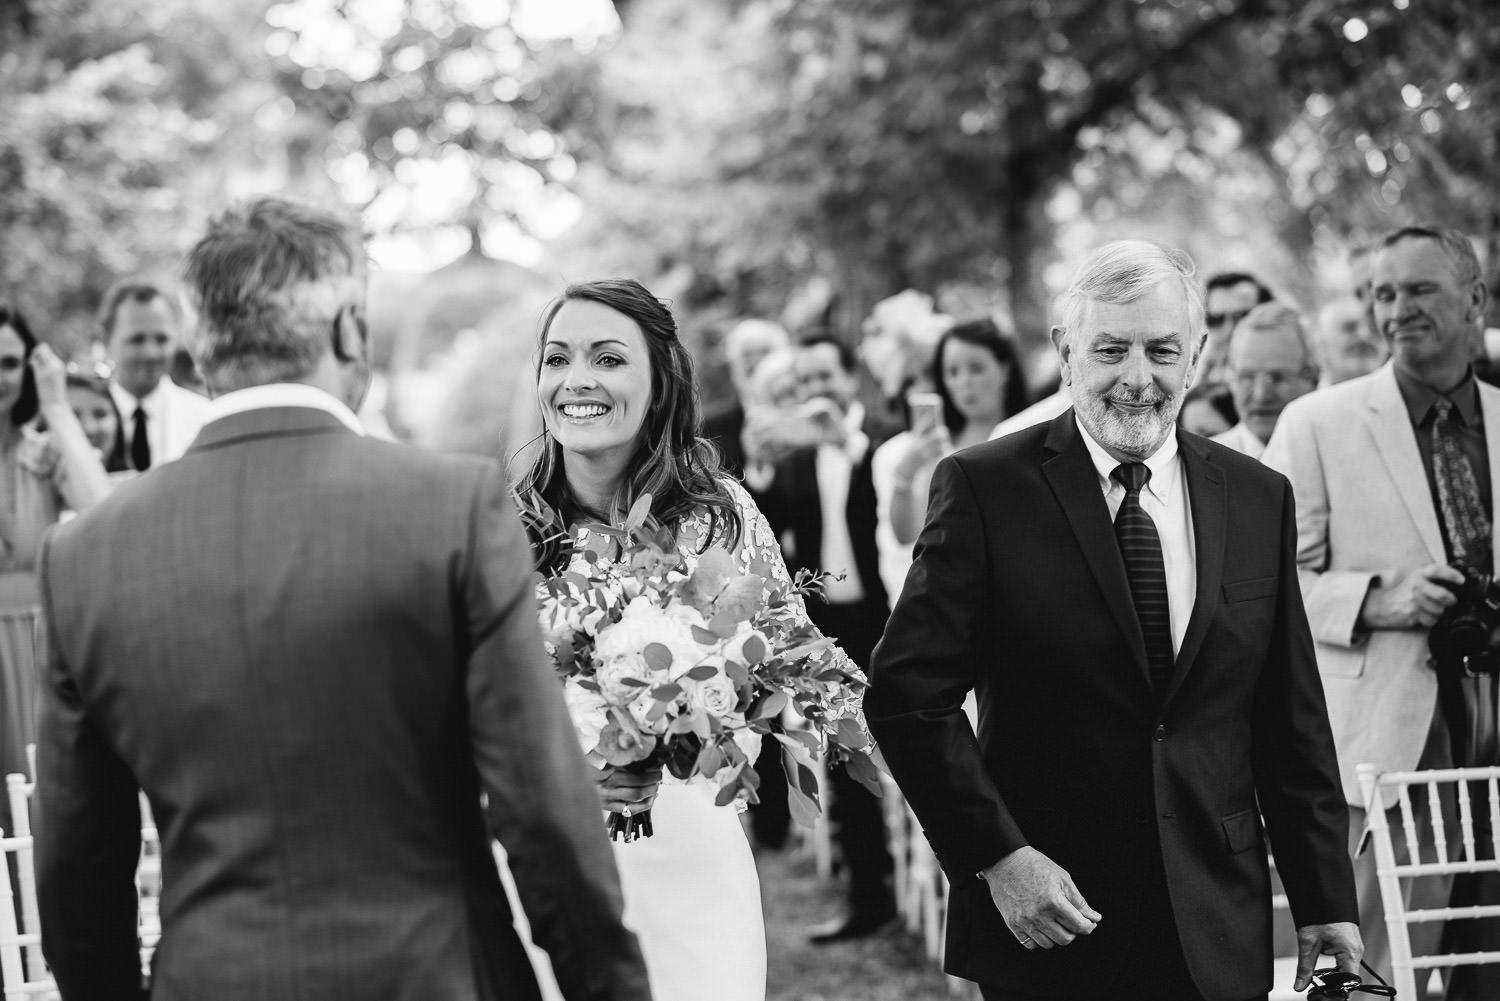 Outdoor wedding ceremony at chateau de la bourlie wedding by destination wedding photographer the shannons photography